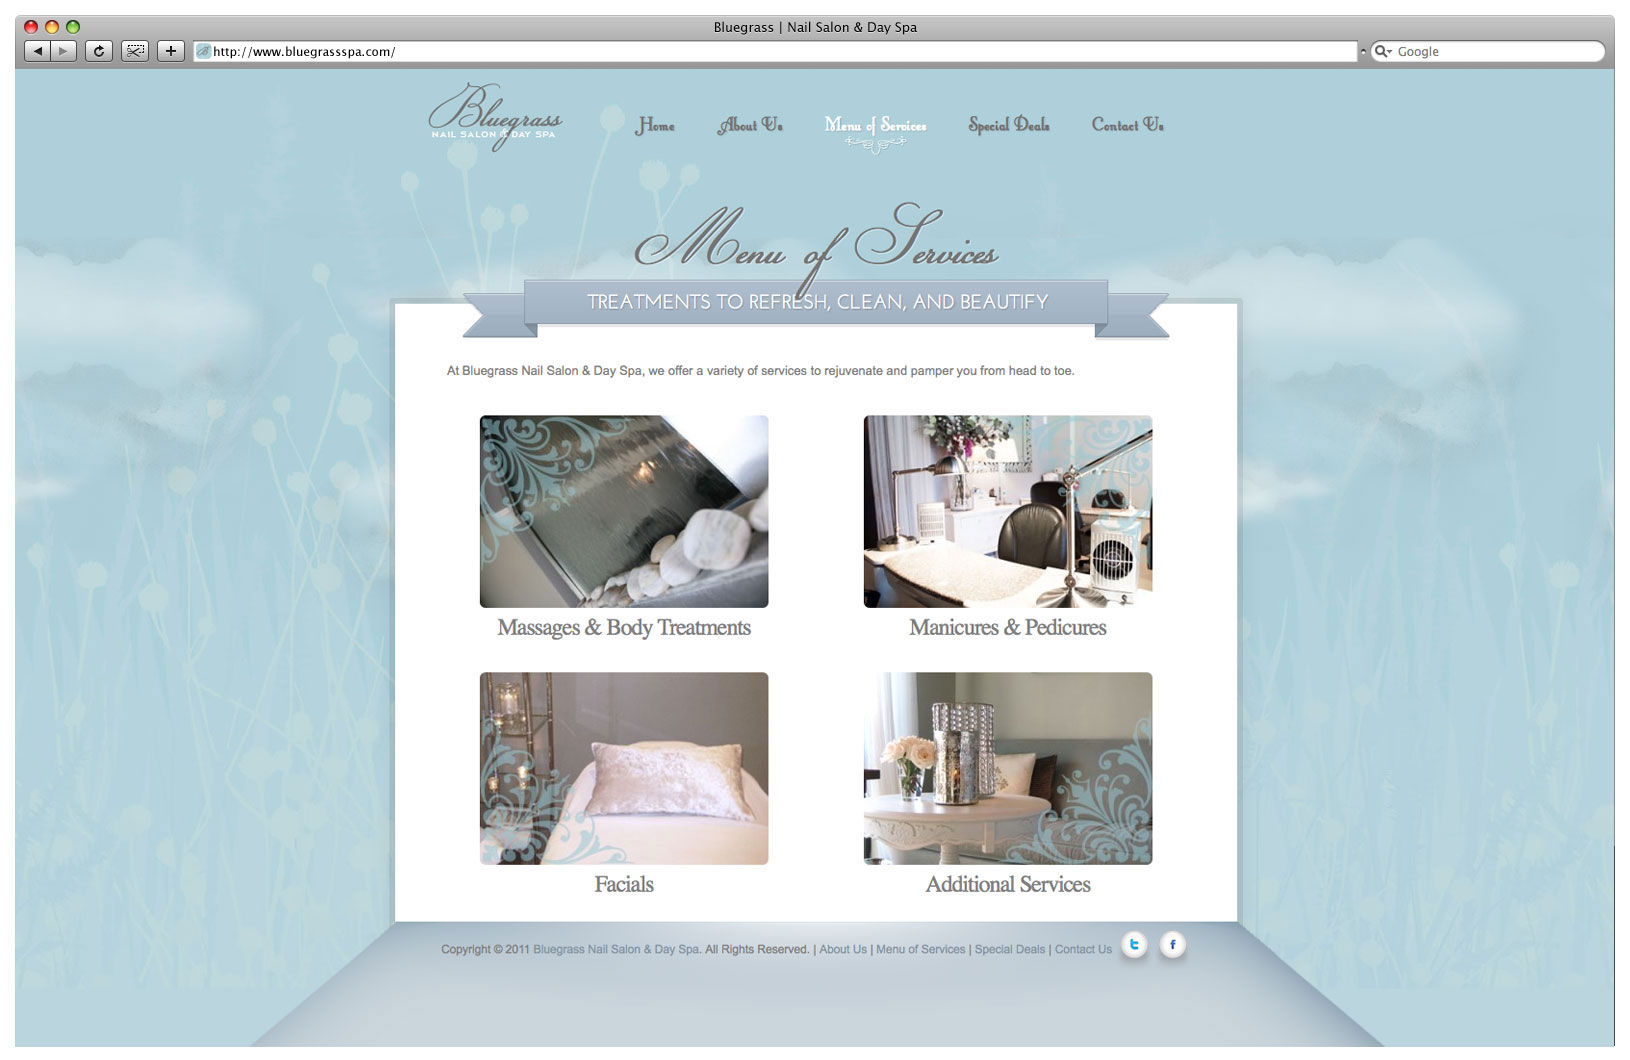 Bluegrass Day Spa & Nail Salon Website - Menu of Services